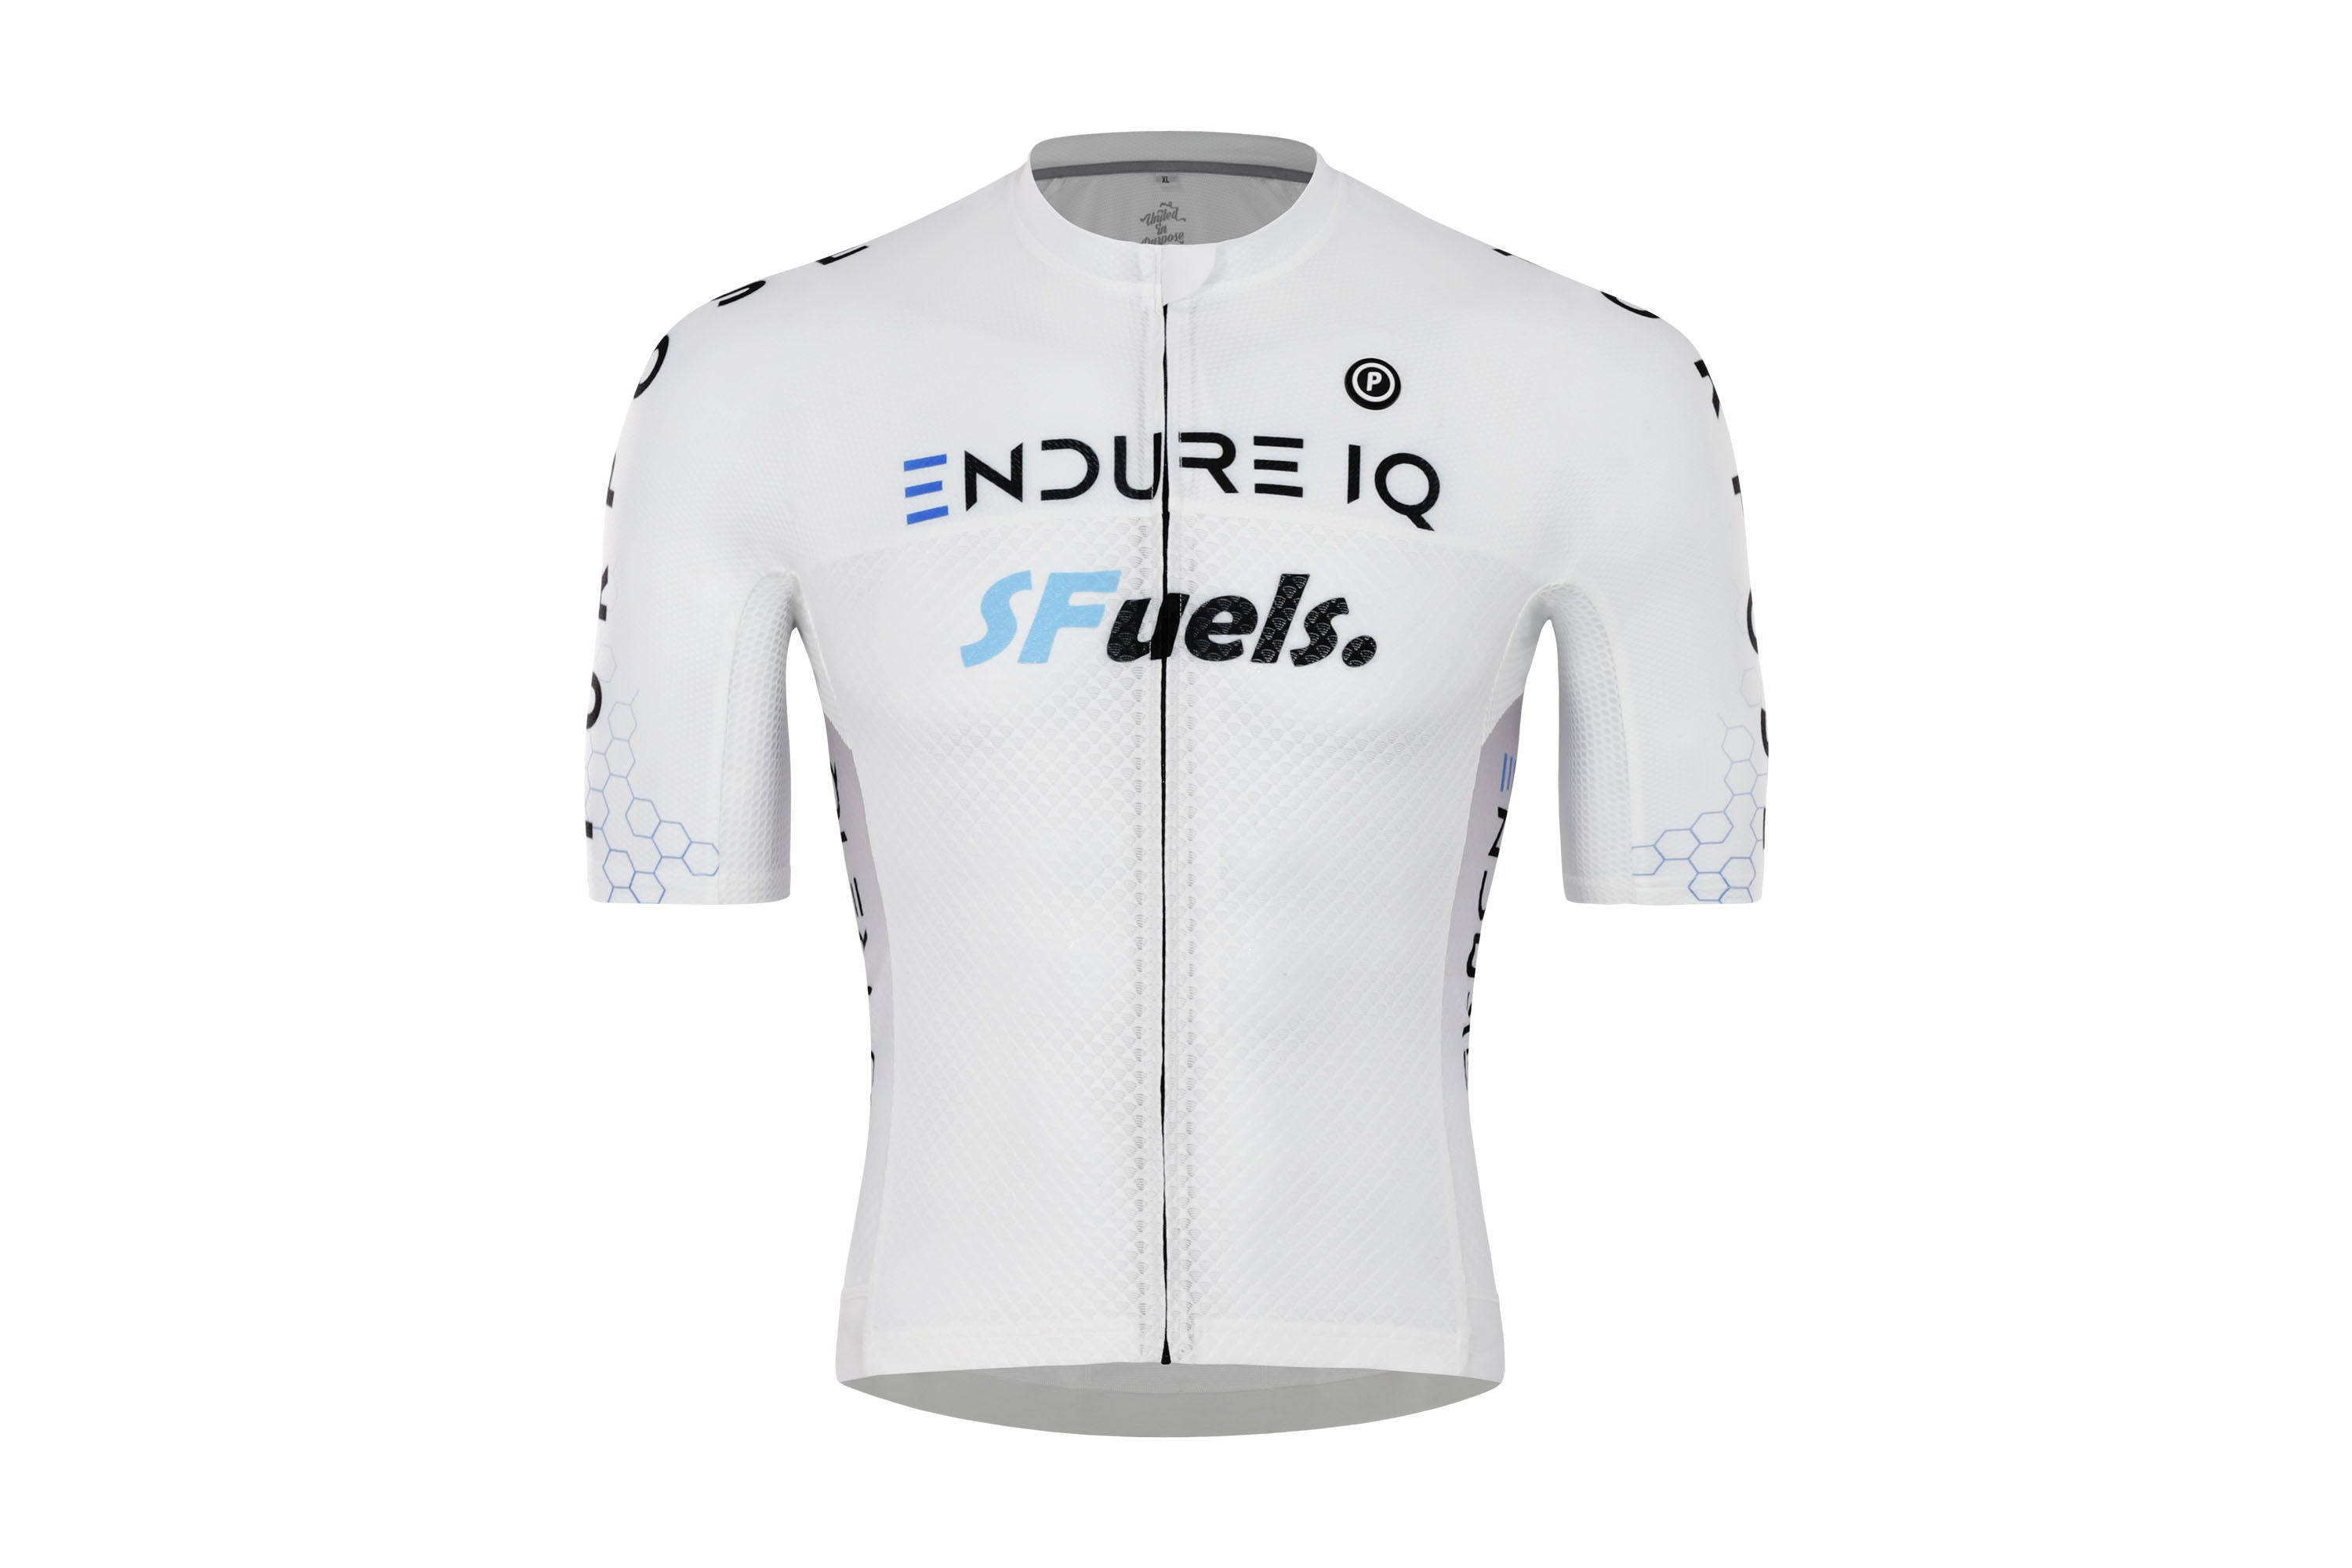 Purpose Victory ELITE Racing Cycling Jersey (EndureIQ Edition White)